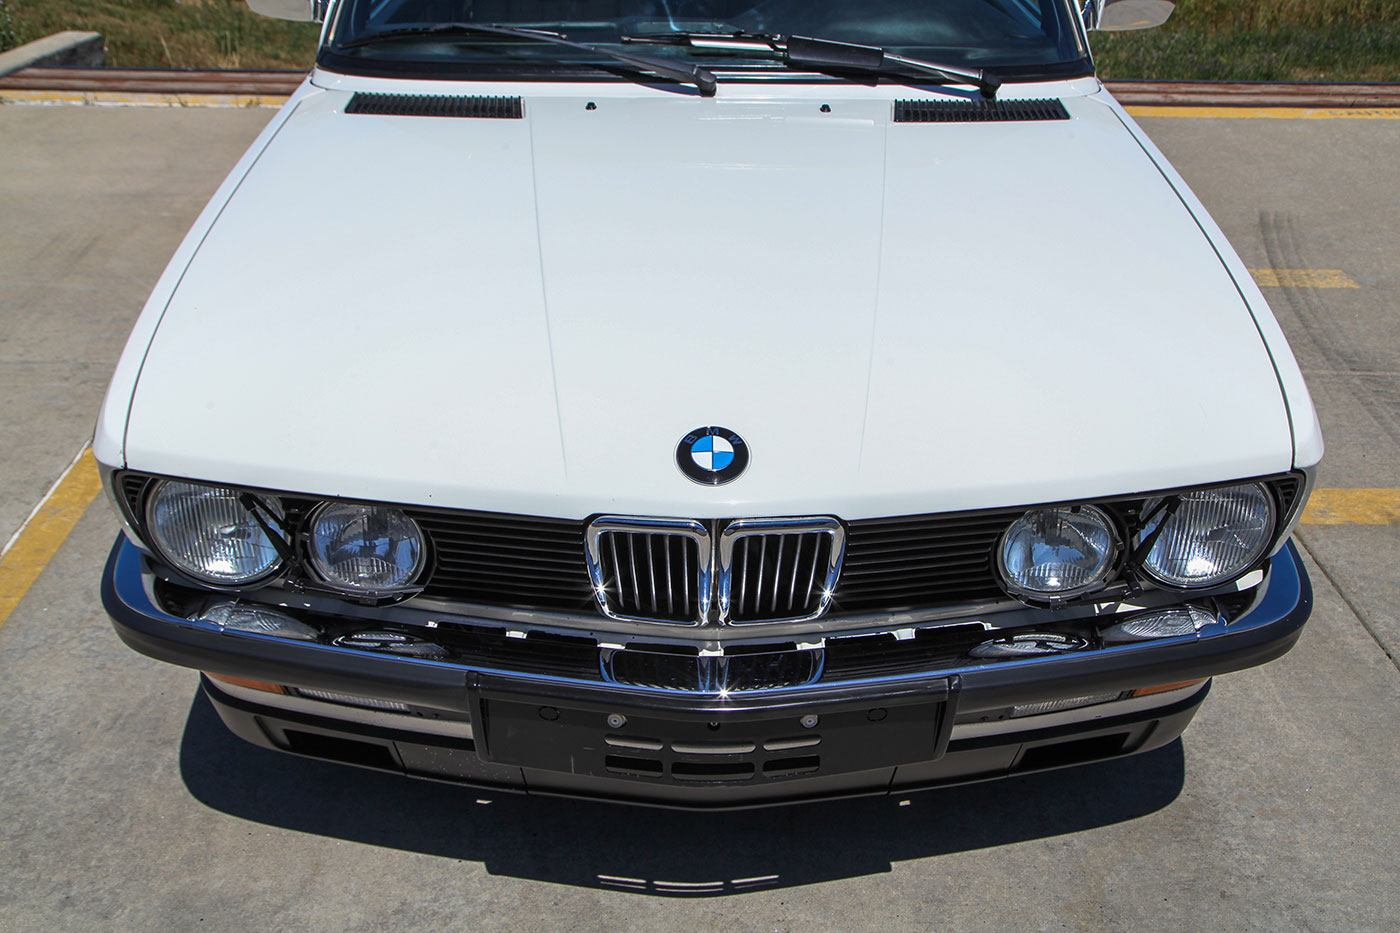 1988 BMW 535iS S38 (Euro M5 Style) Swap